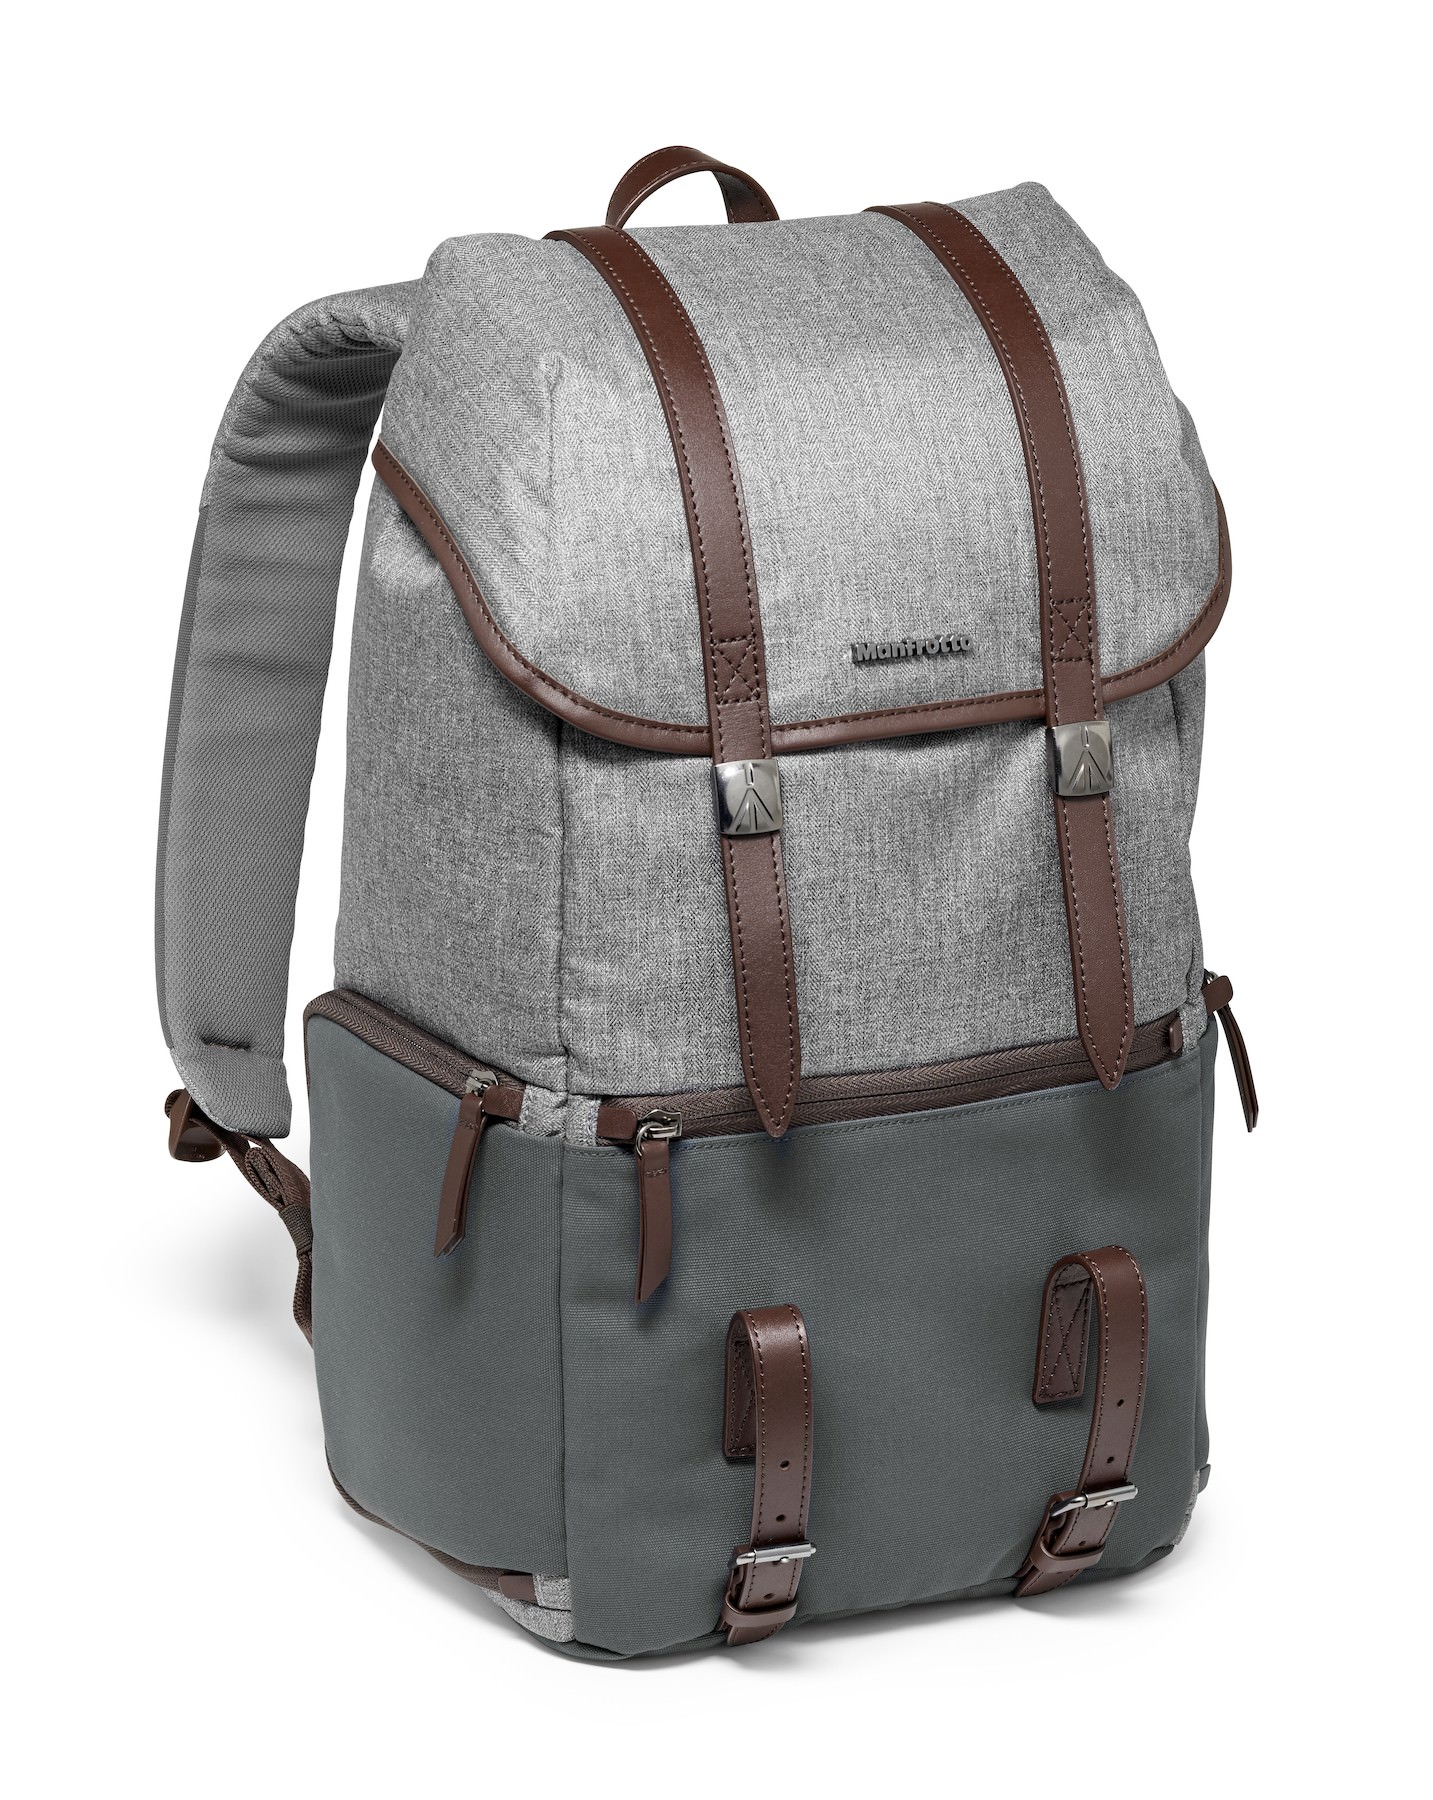 Backpack Camera Bag.jpg